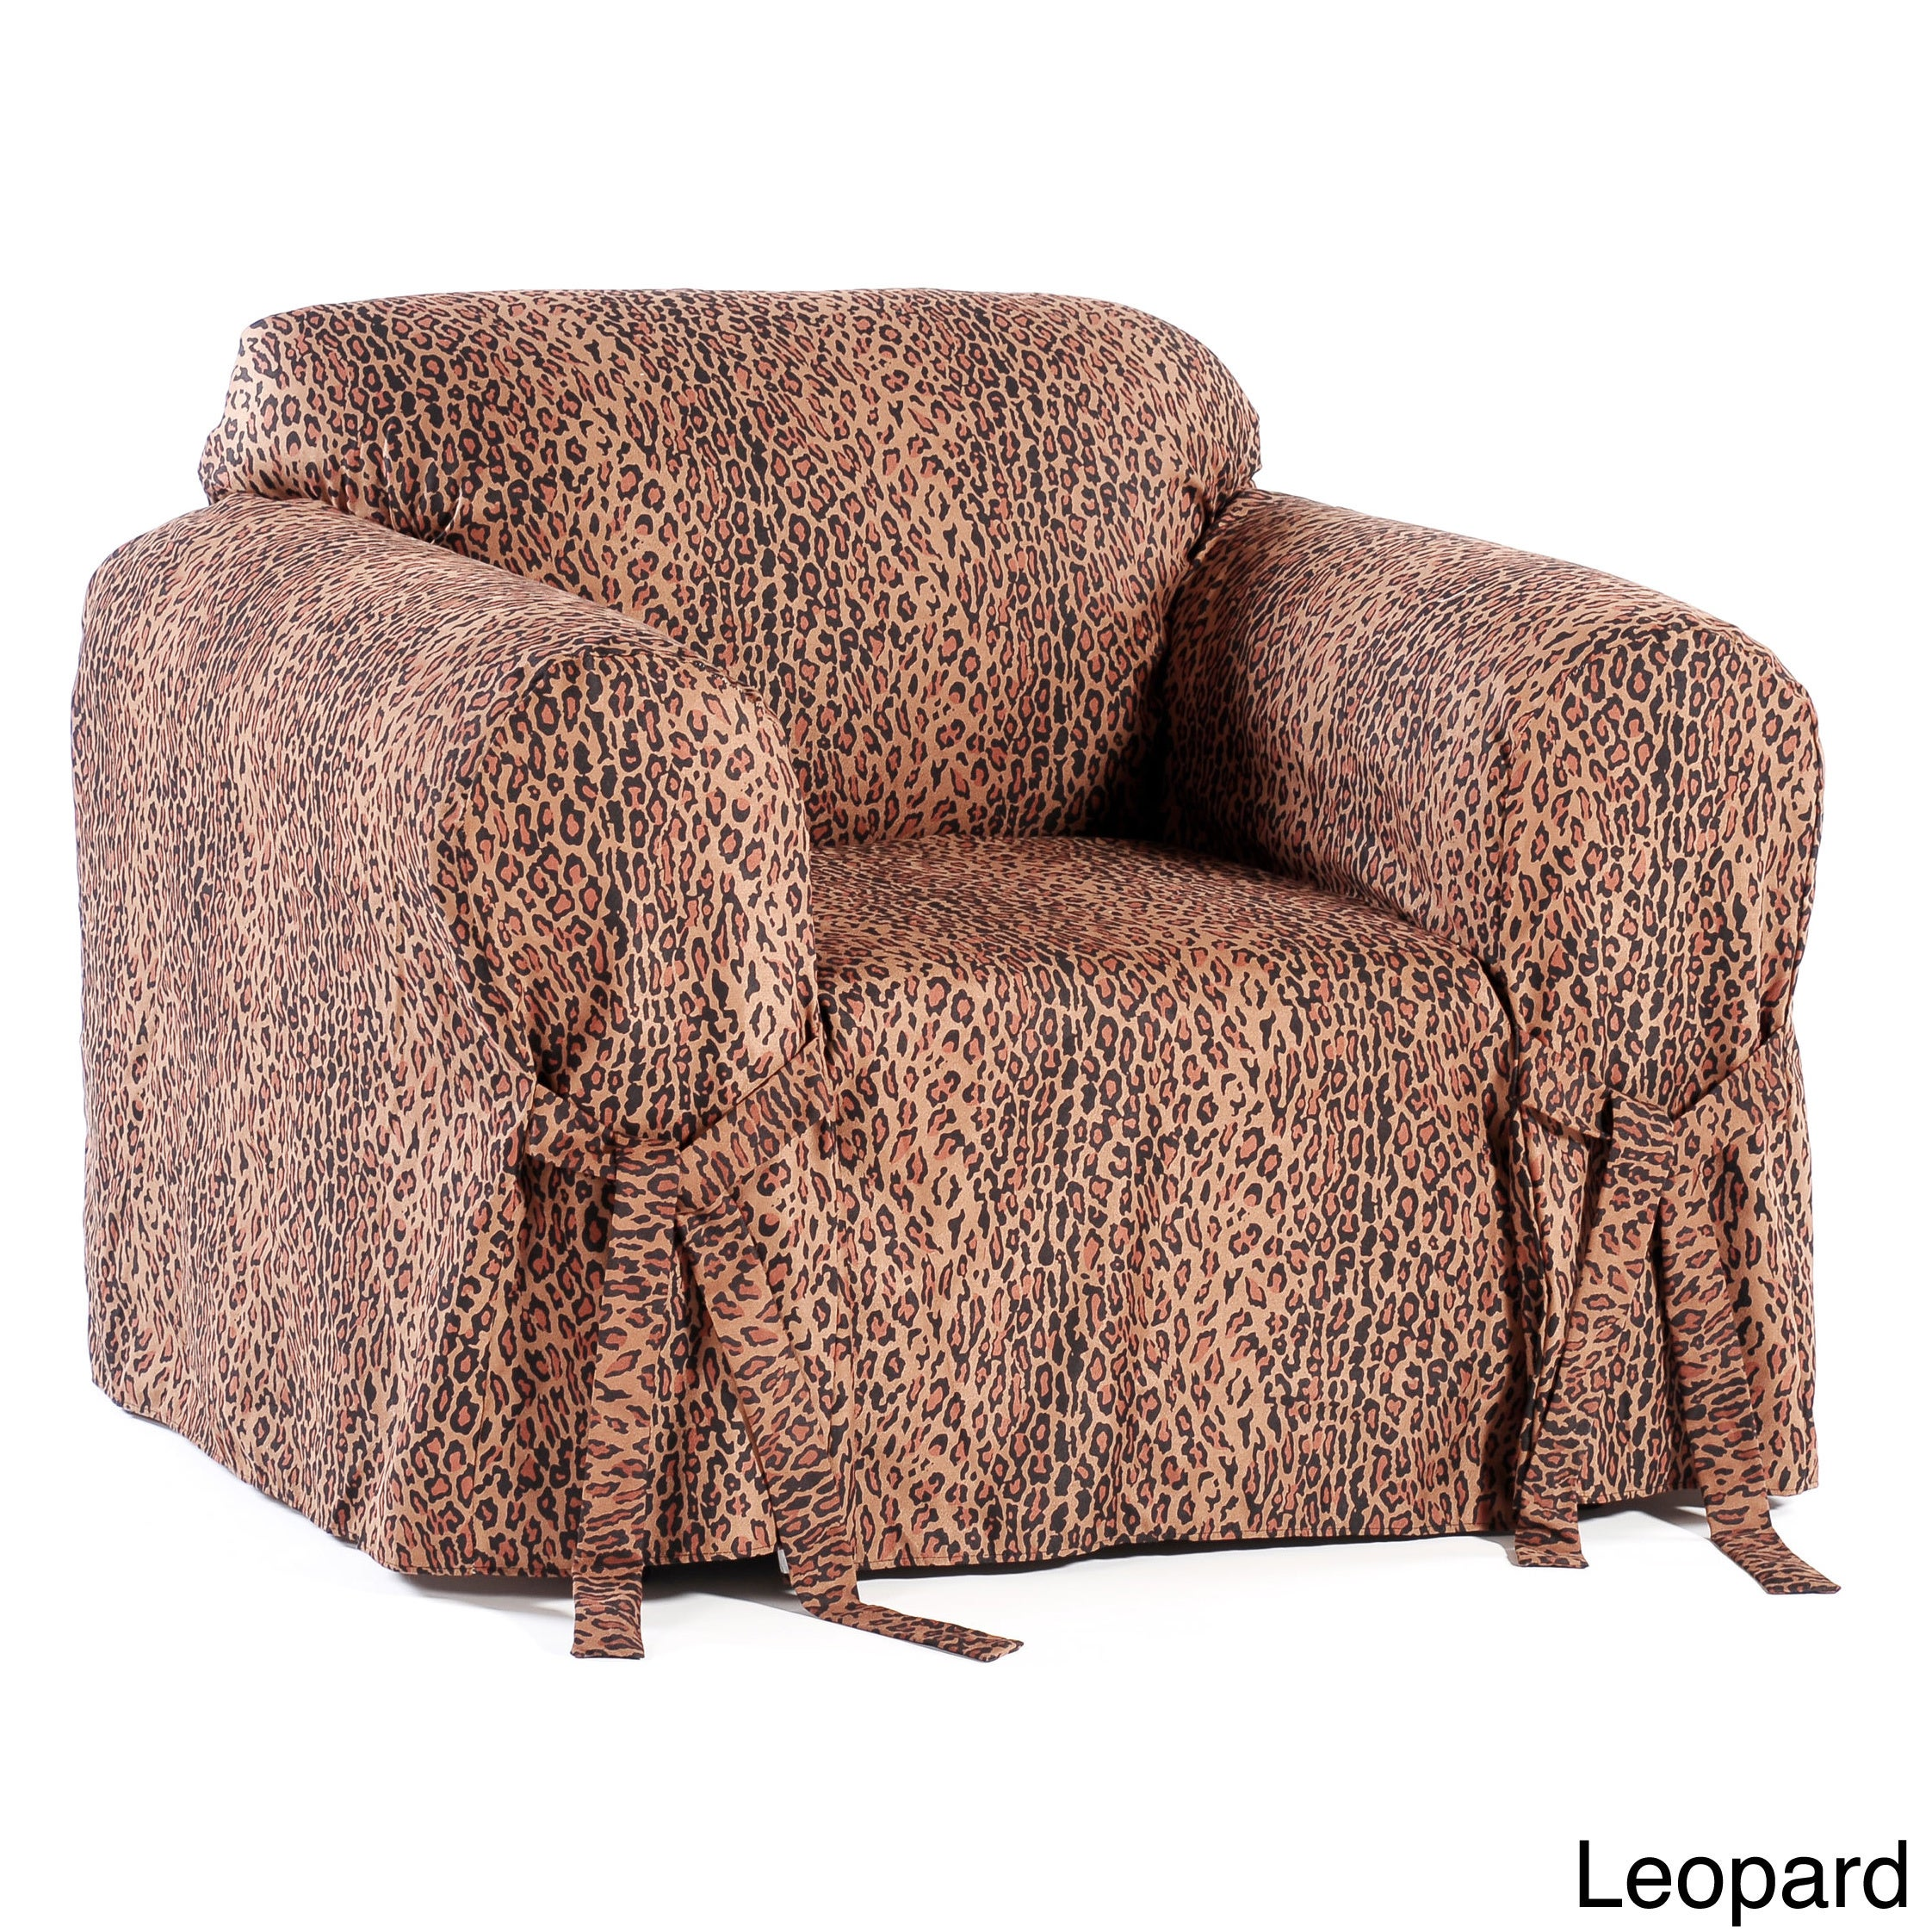 Details about microsuede animal print chair slipcover